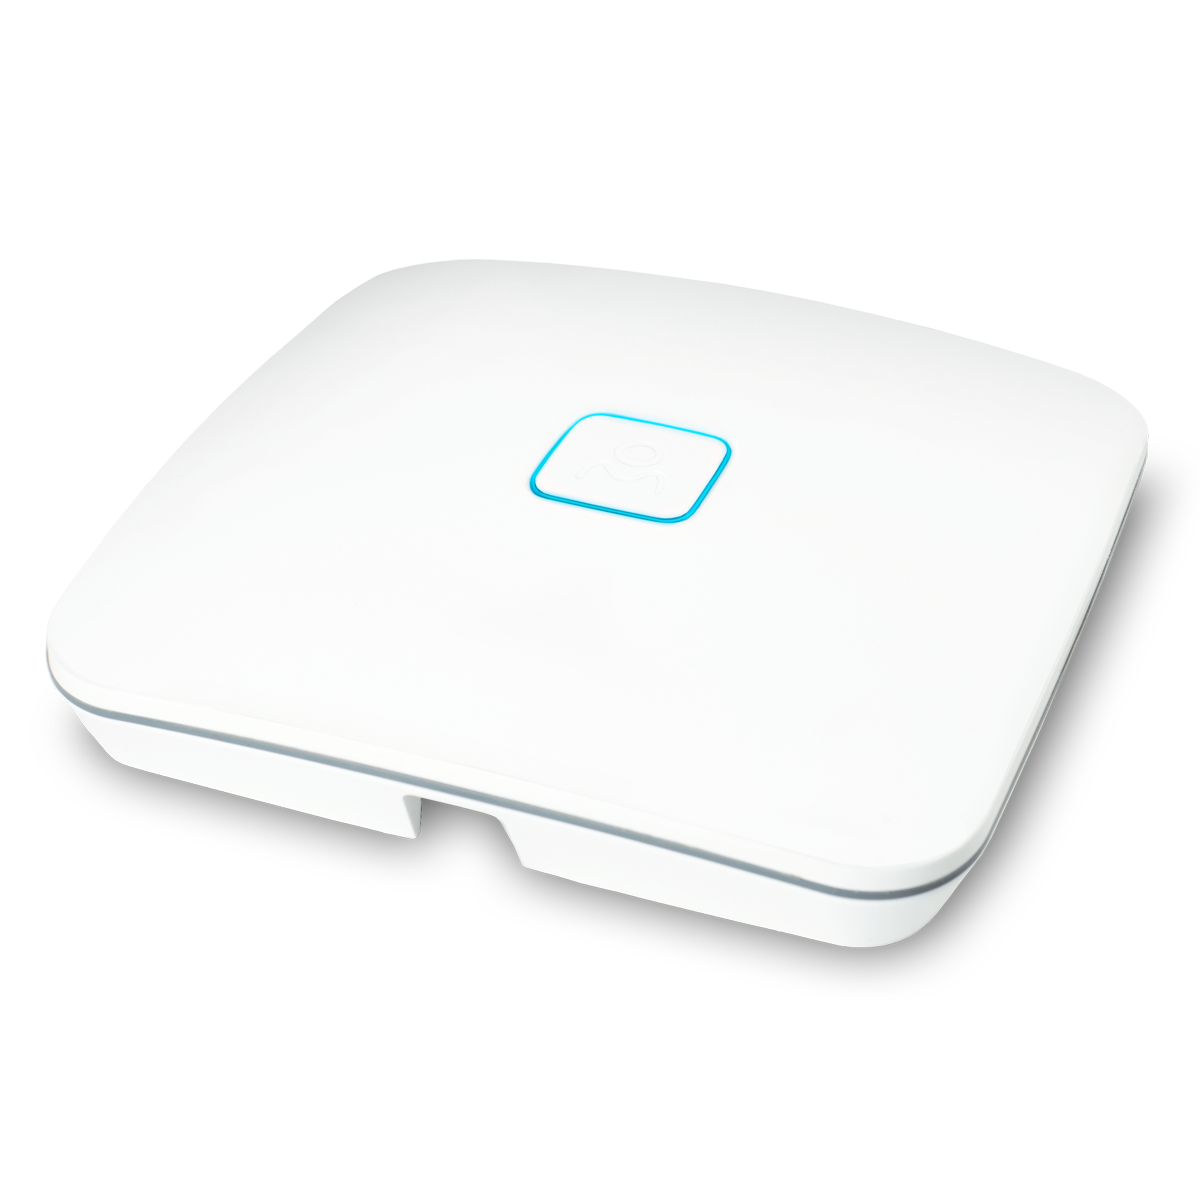 Open-Mesh A62 2.4/5GHz Indoor/Outdoor Access Point